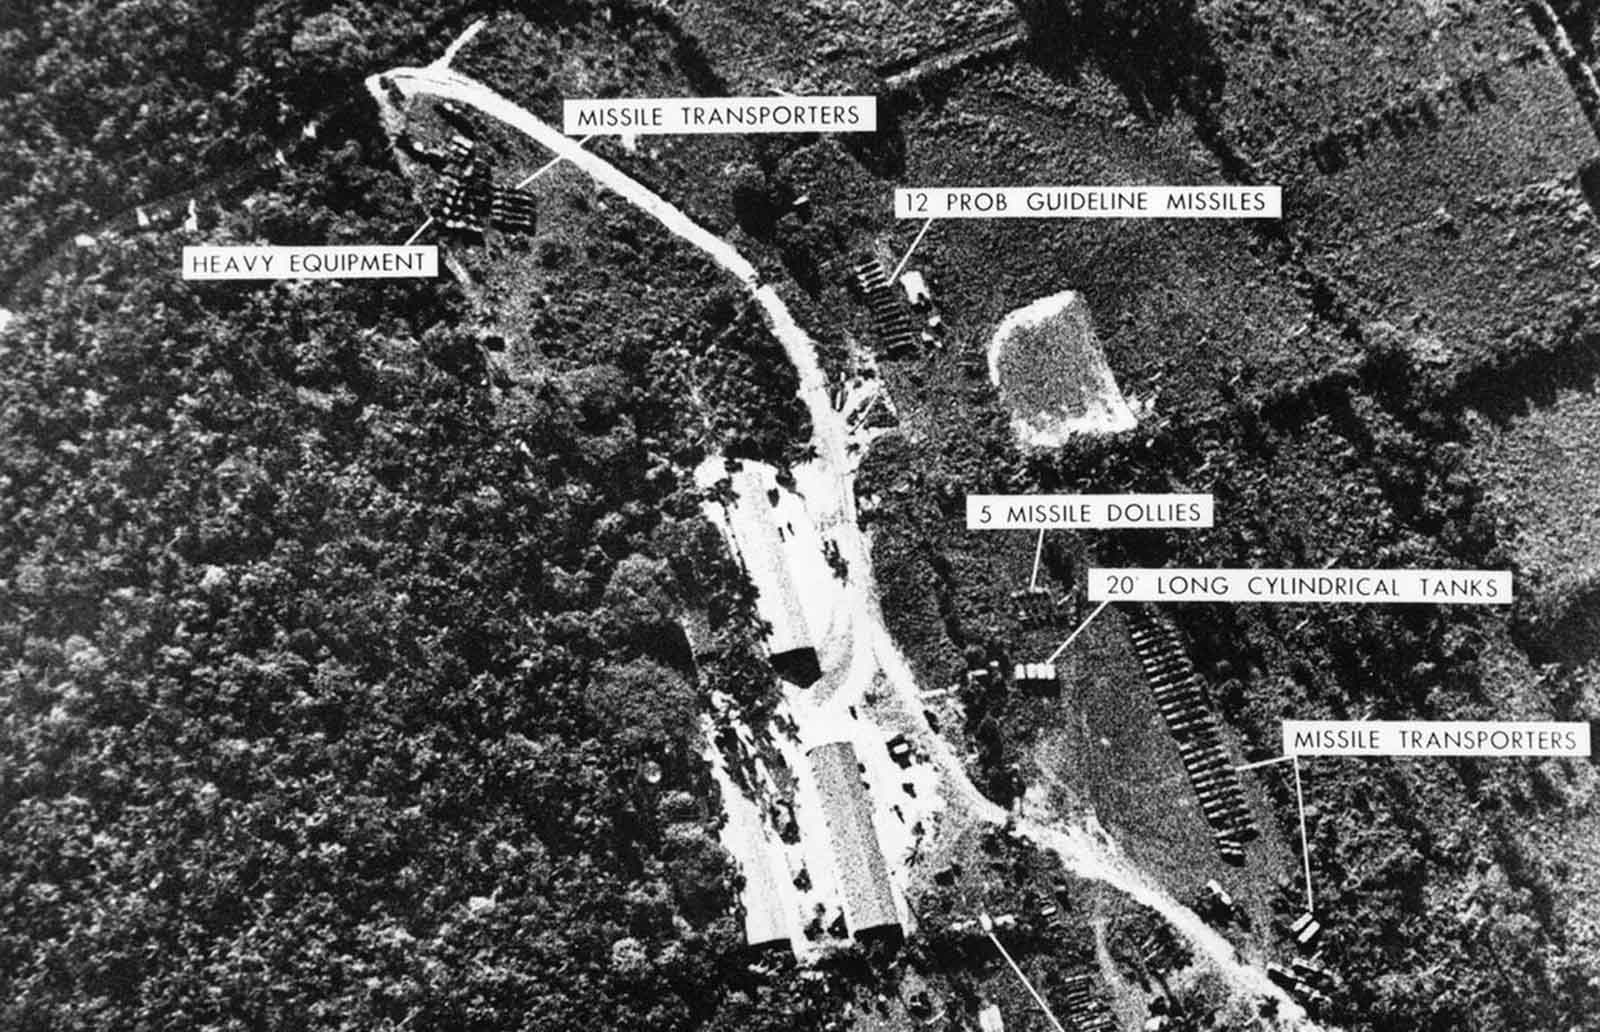 an analysis of cuban missile crisis journal on russian government